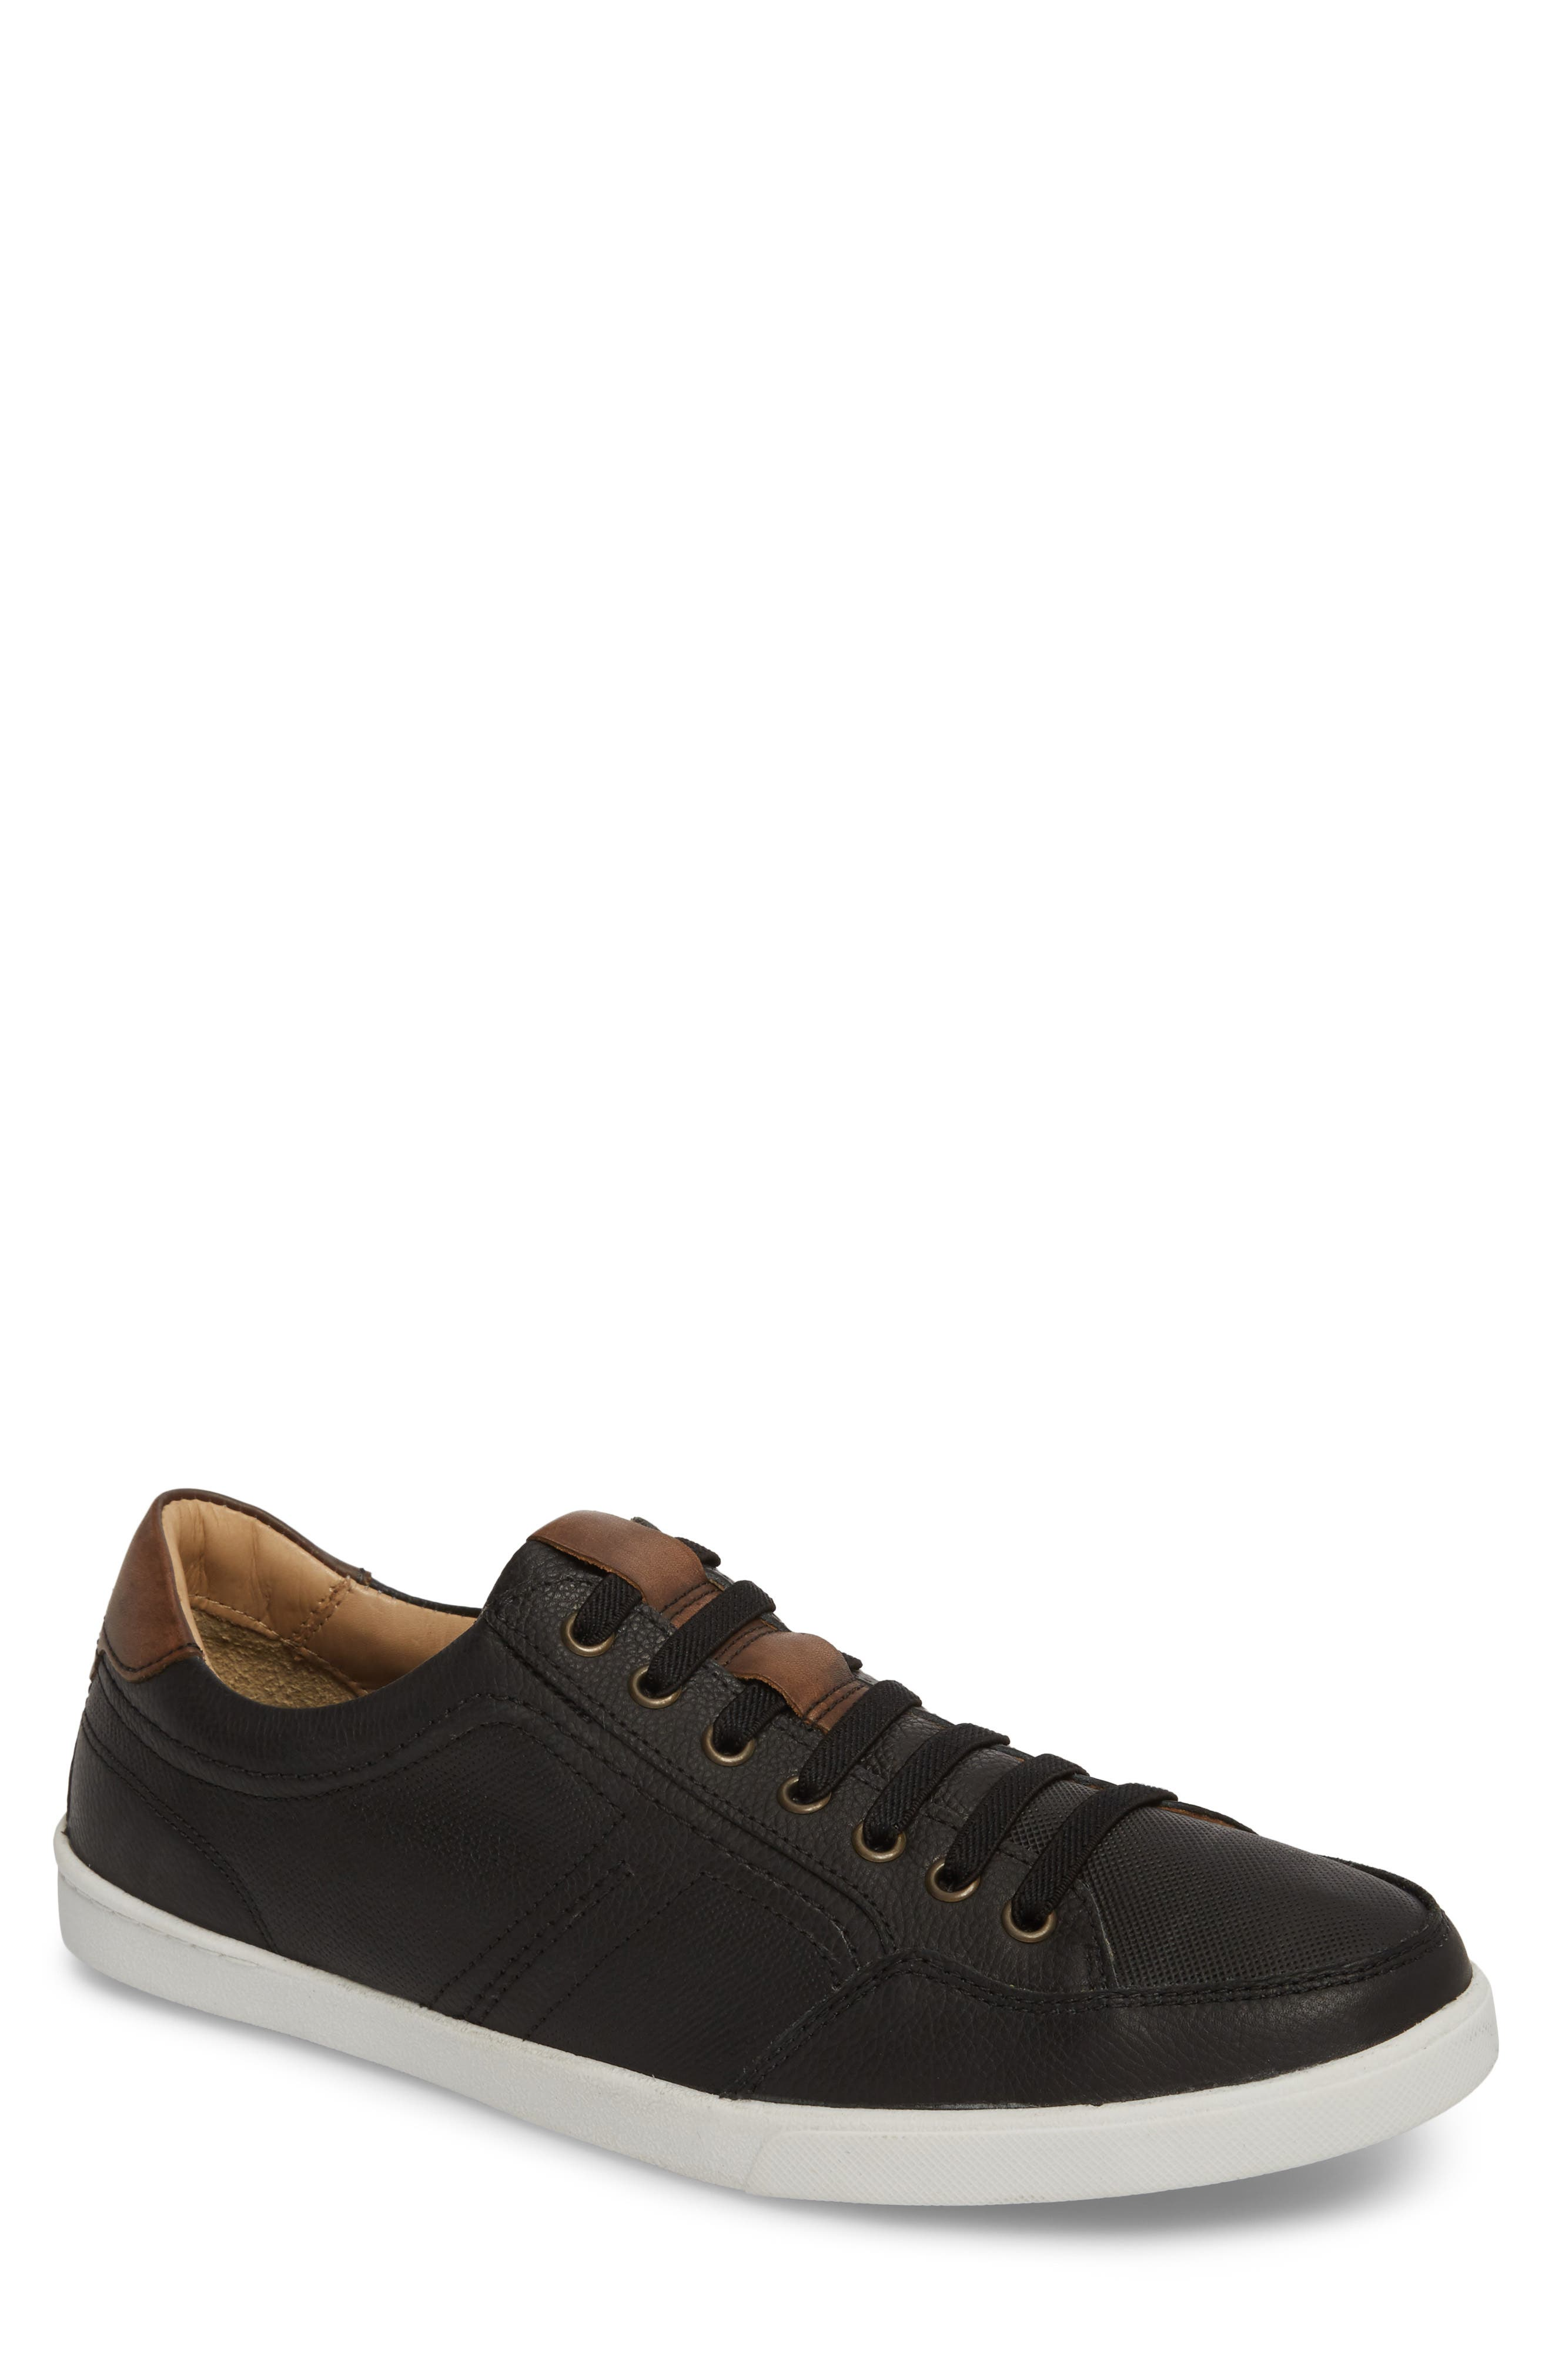 Quinton Textured Low Top Sneaker,                         Main,                         color, BLACK LEATHER